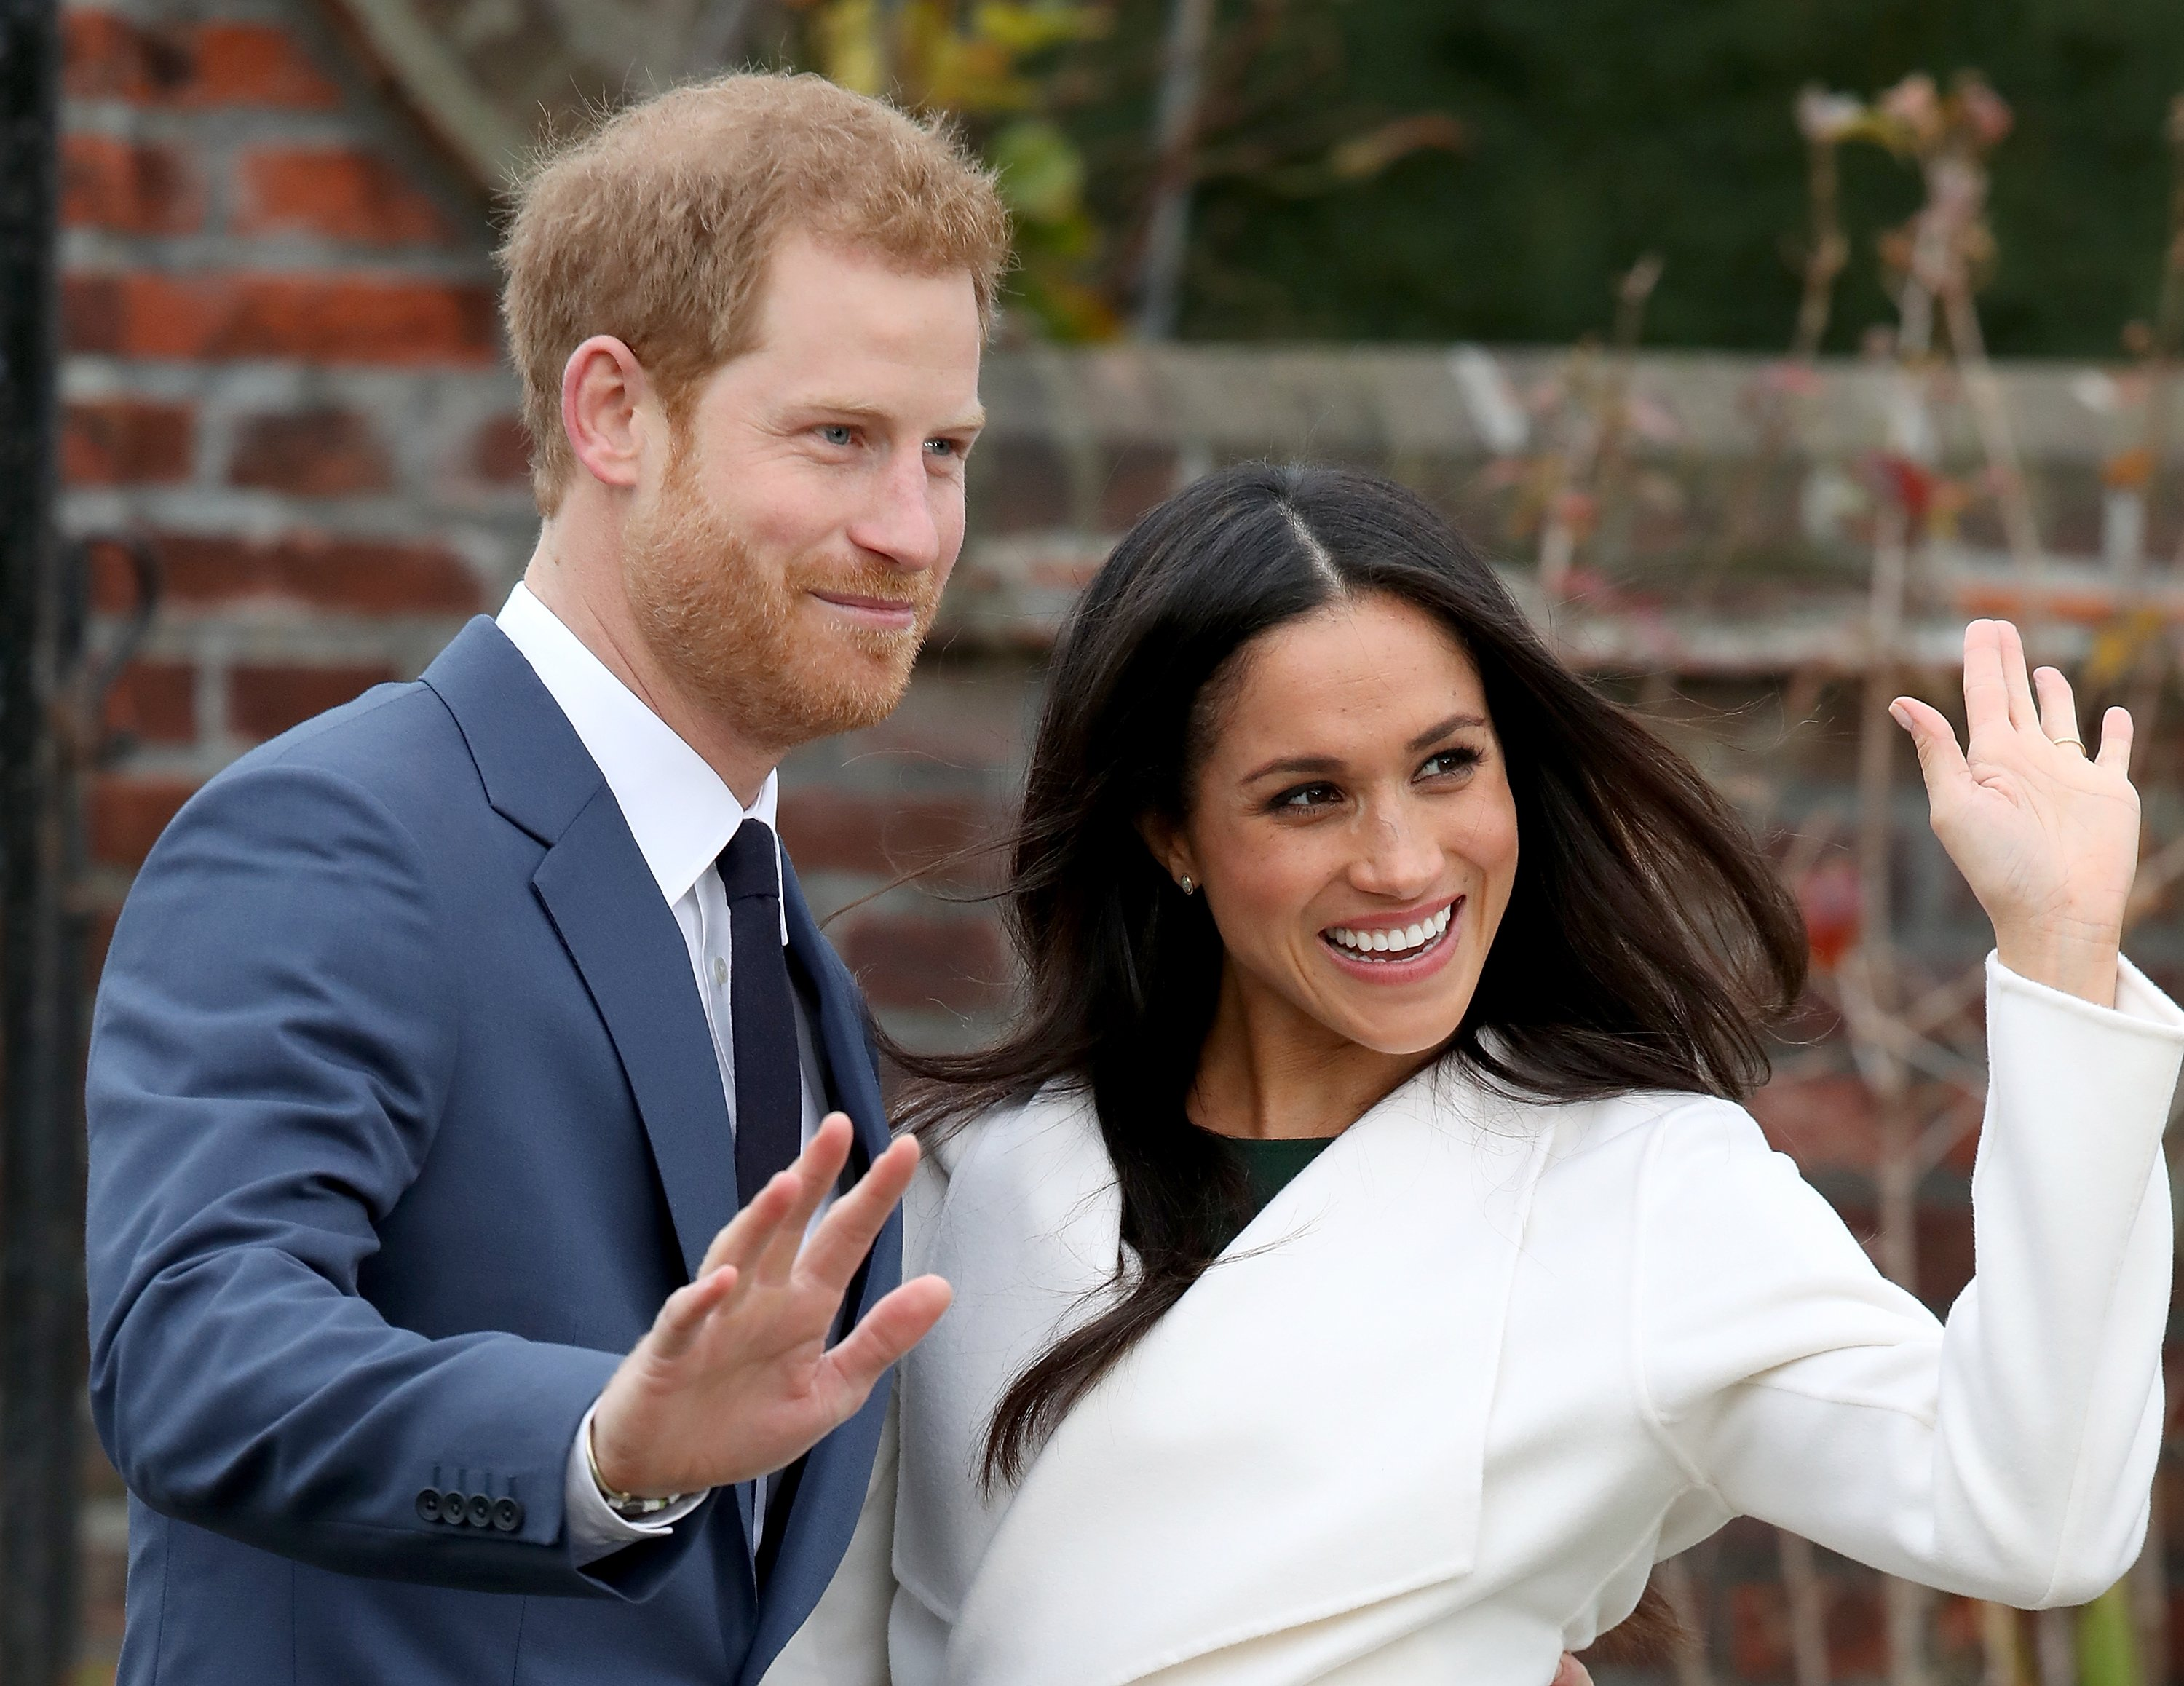 Prince Harry and Meghan Markle pose for an engagement announcement at Kensington Palace in London, England on November 27, 2017 | Photo: Getty Images